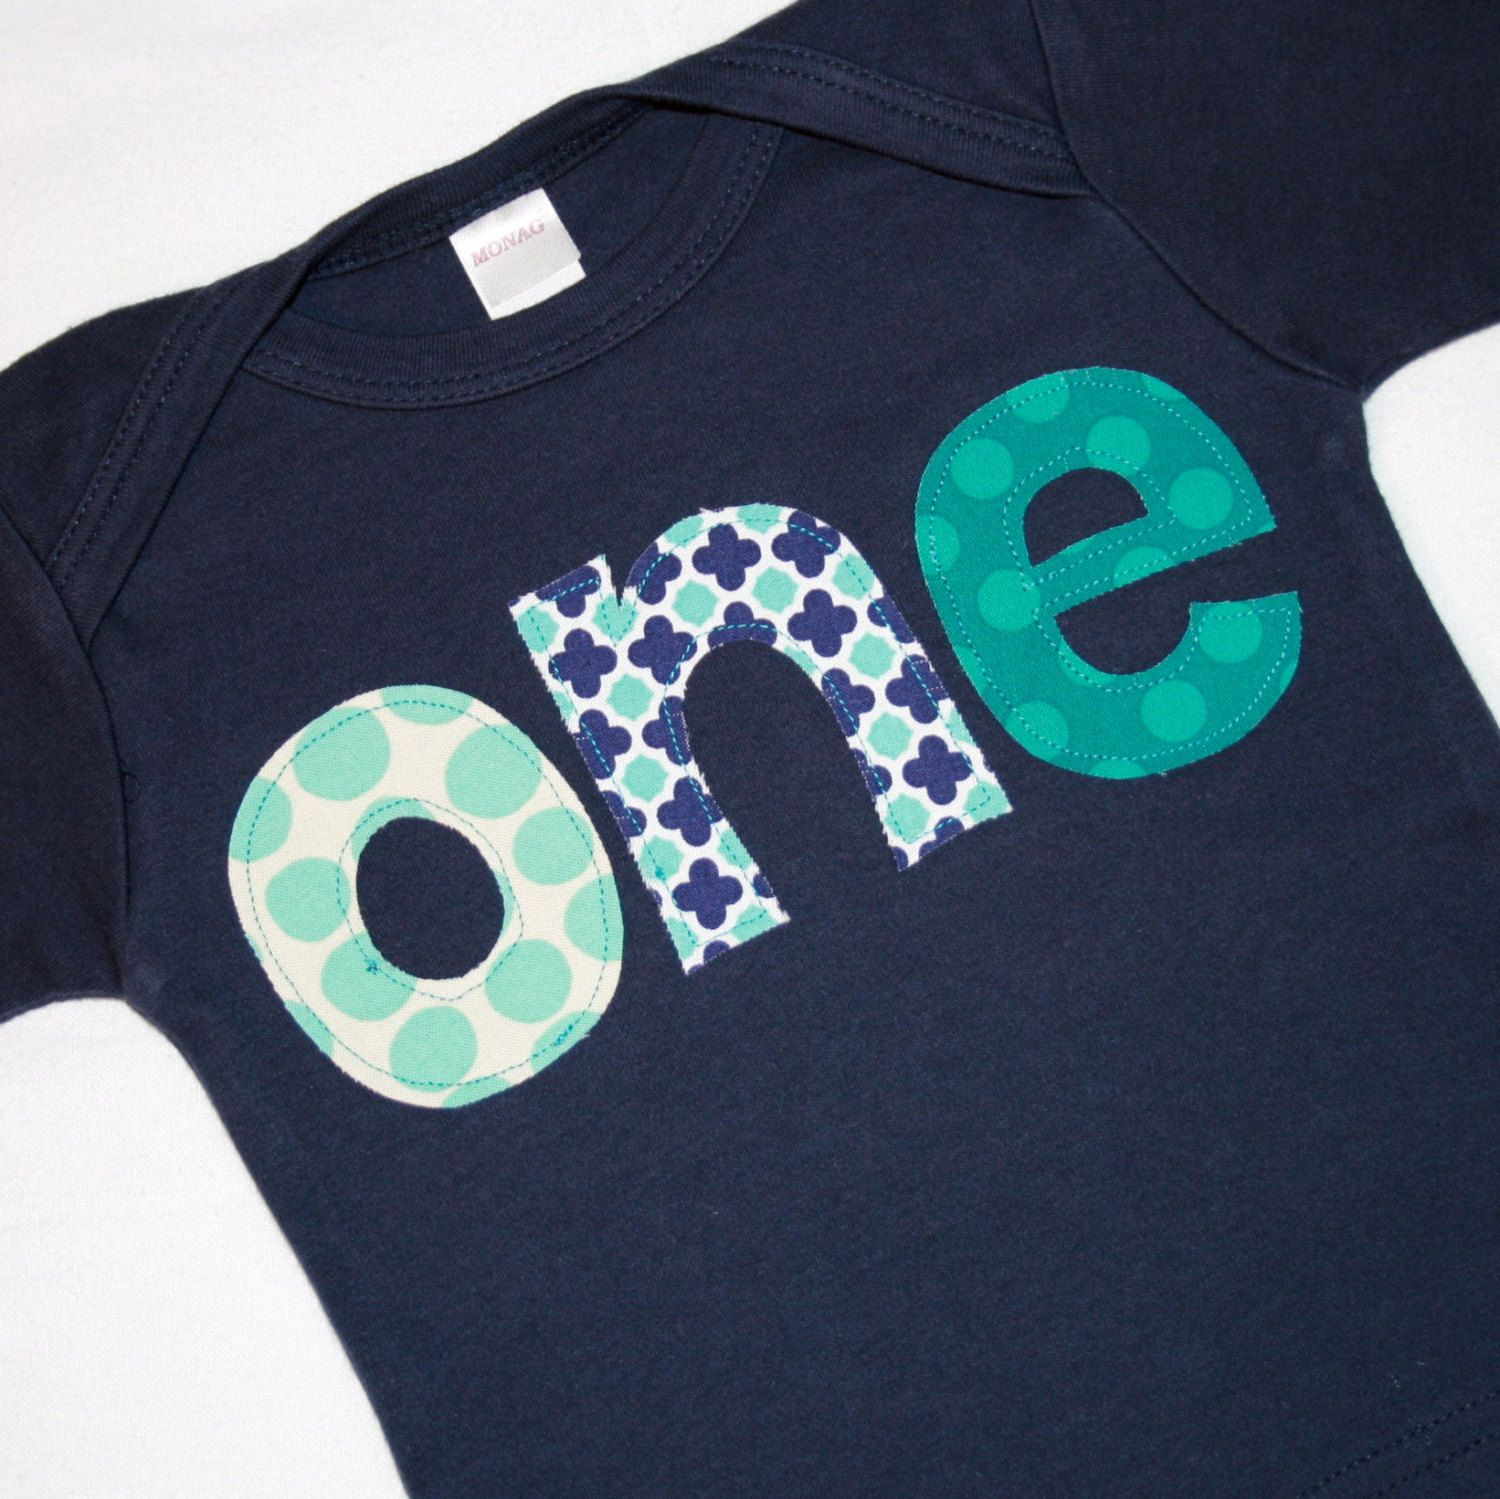 Boys ONE Shirt For First Birthday